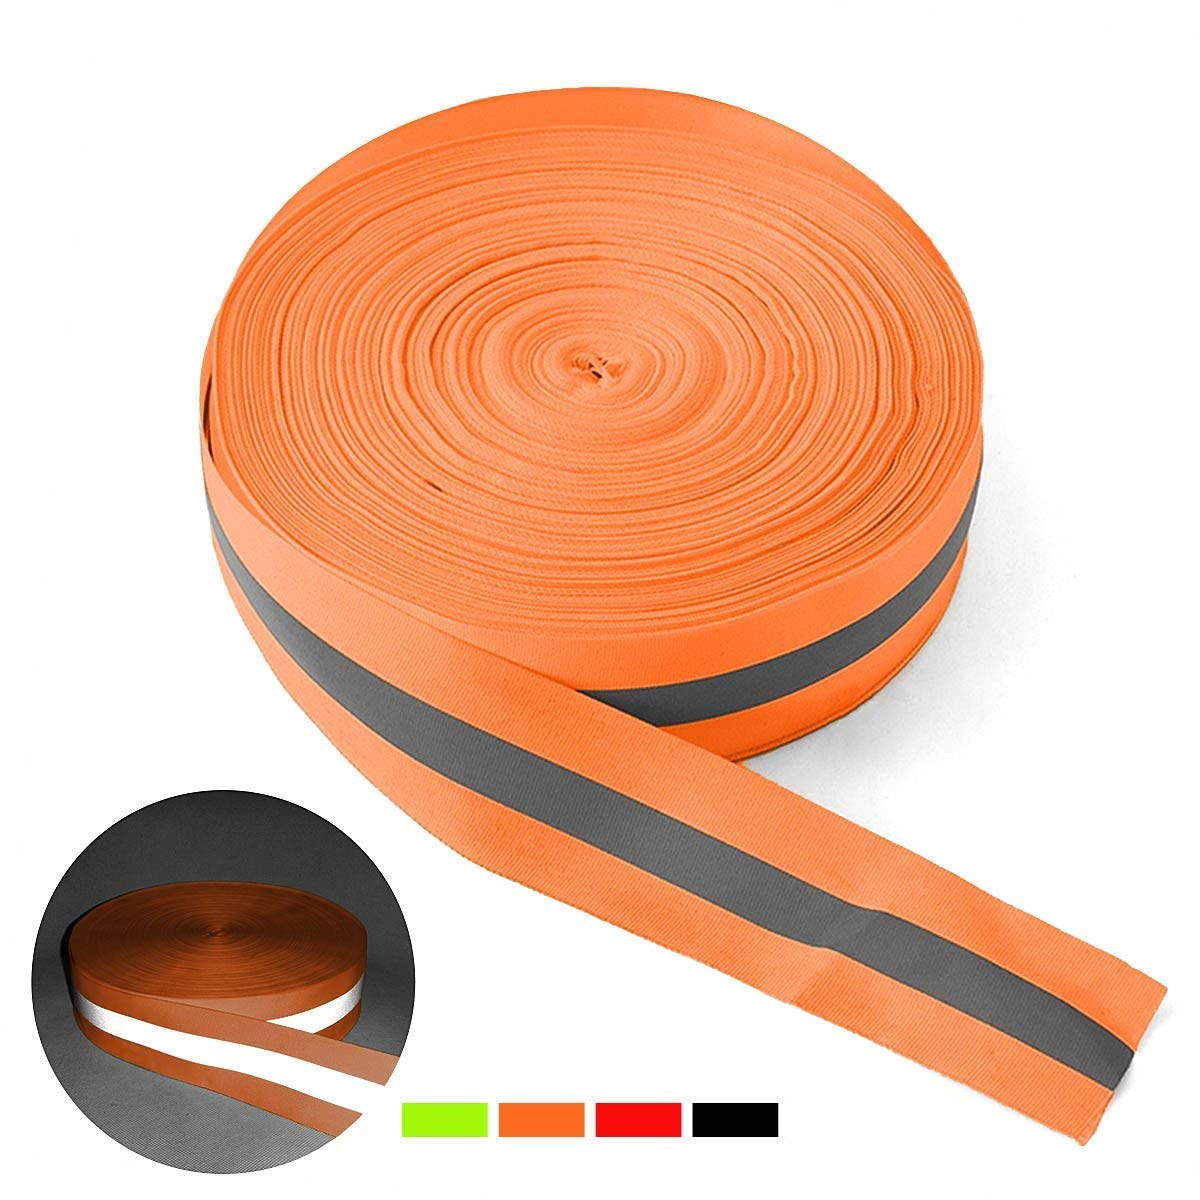 Width 1.96 Fabric Reflective Safety Tape Sew-on Warning Safety Trim (Lengths Optional) Reemky High Visibility Reflective Tape Strip